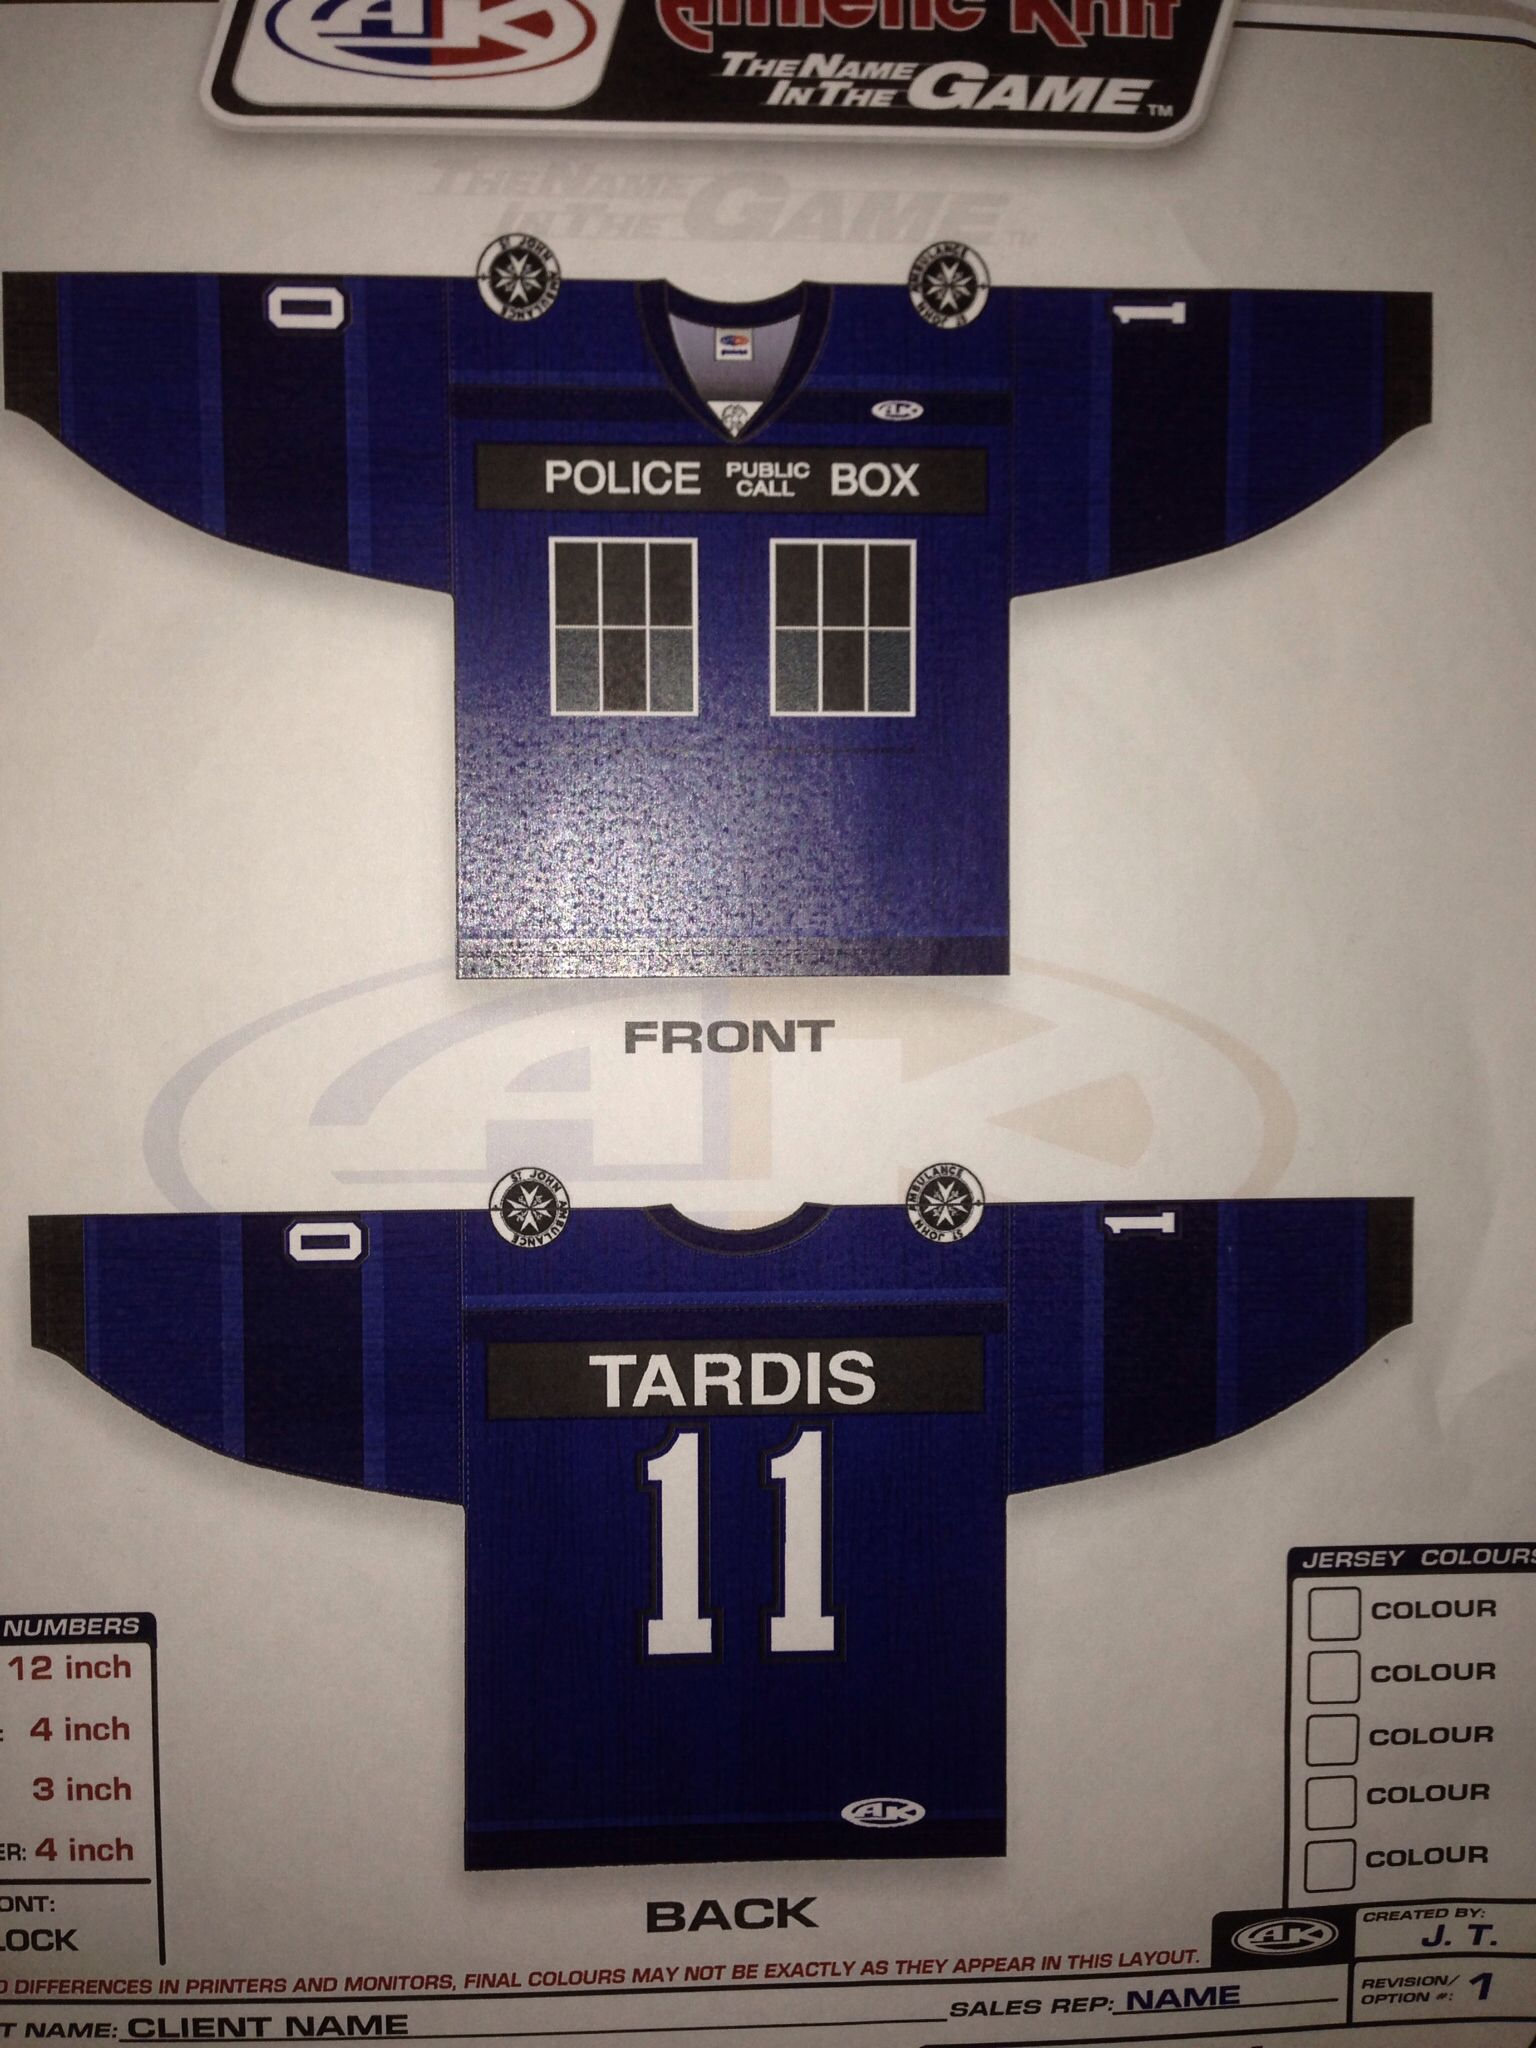 Download Mockup of Doctor Who jersey | Jersey, Name games, Public ...